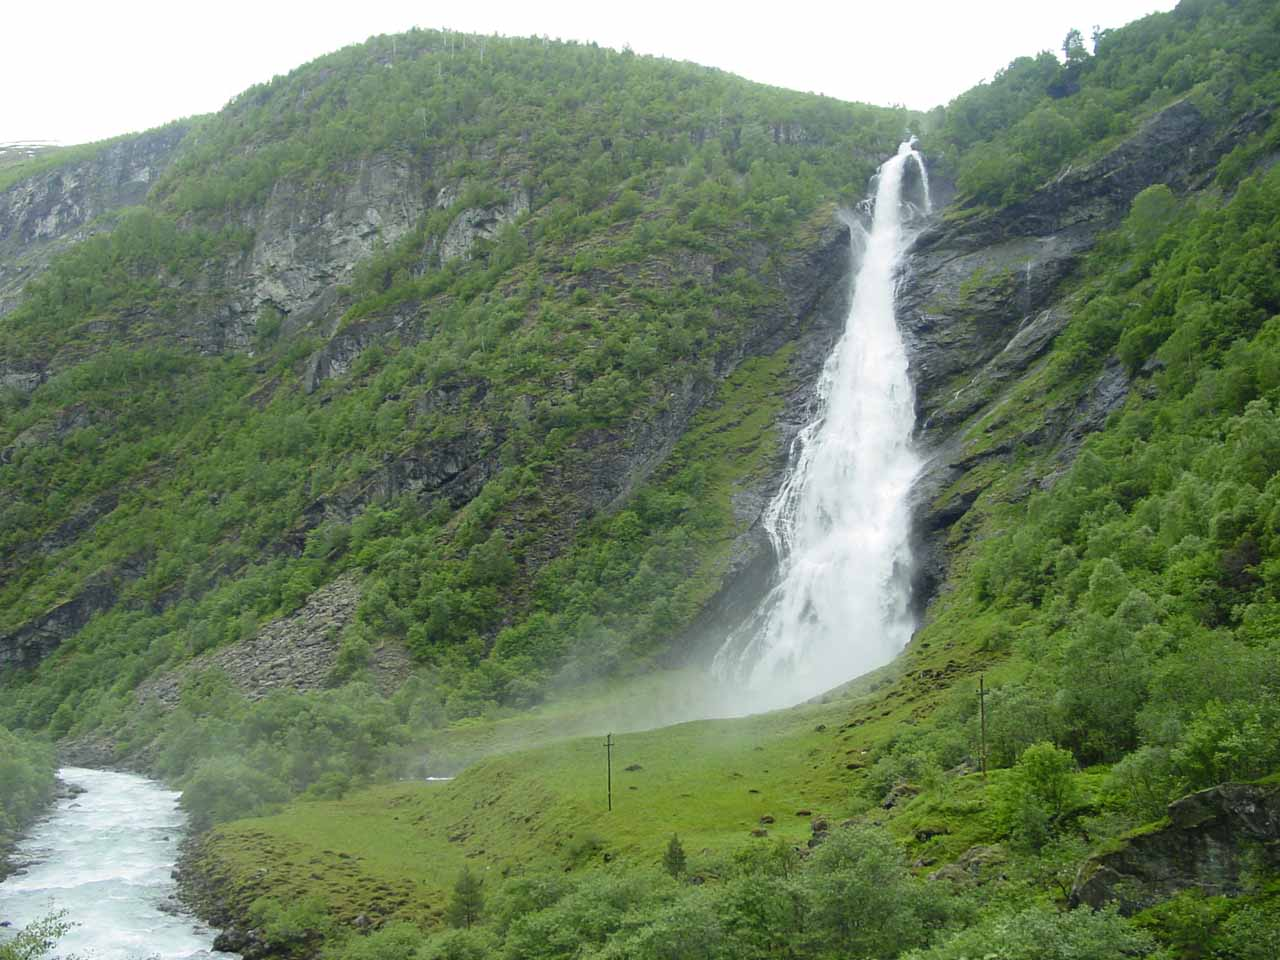 Avdalsfossen was the second major waterfall of Utladalen that Julie and I encountered.  This was around 10-15 minutes walk from the car park